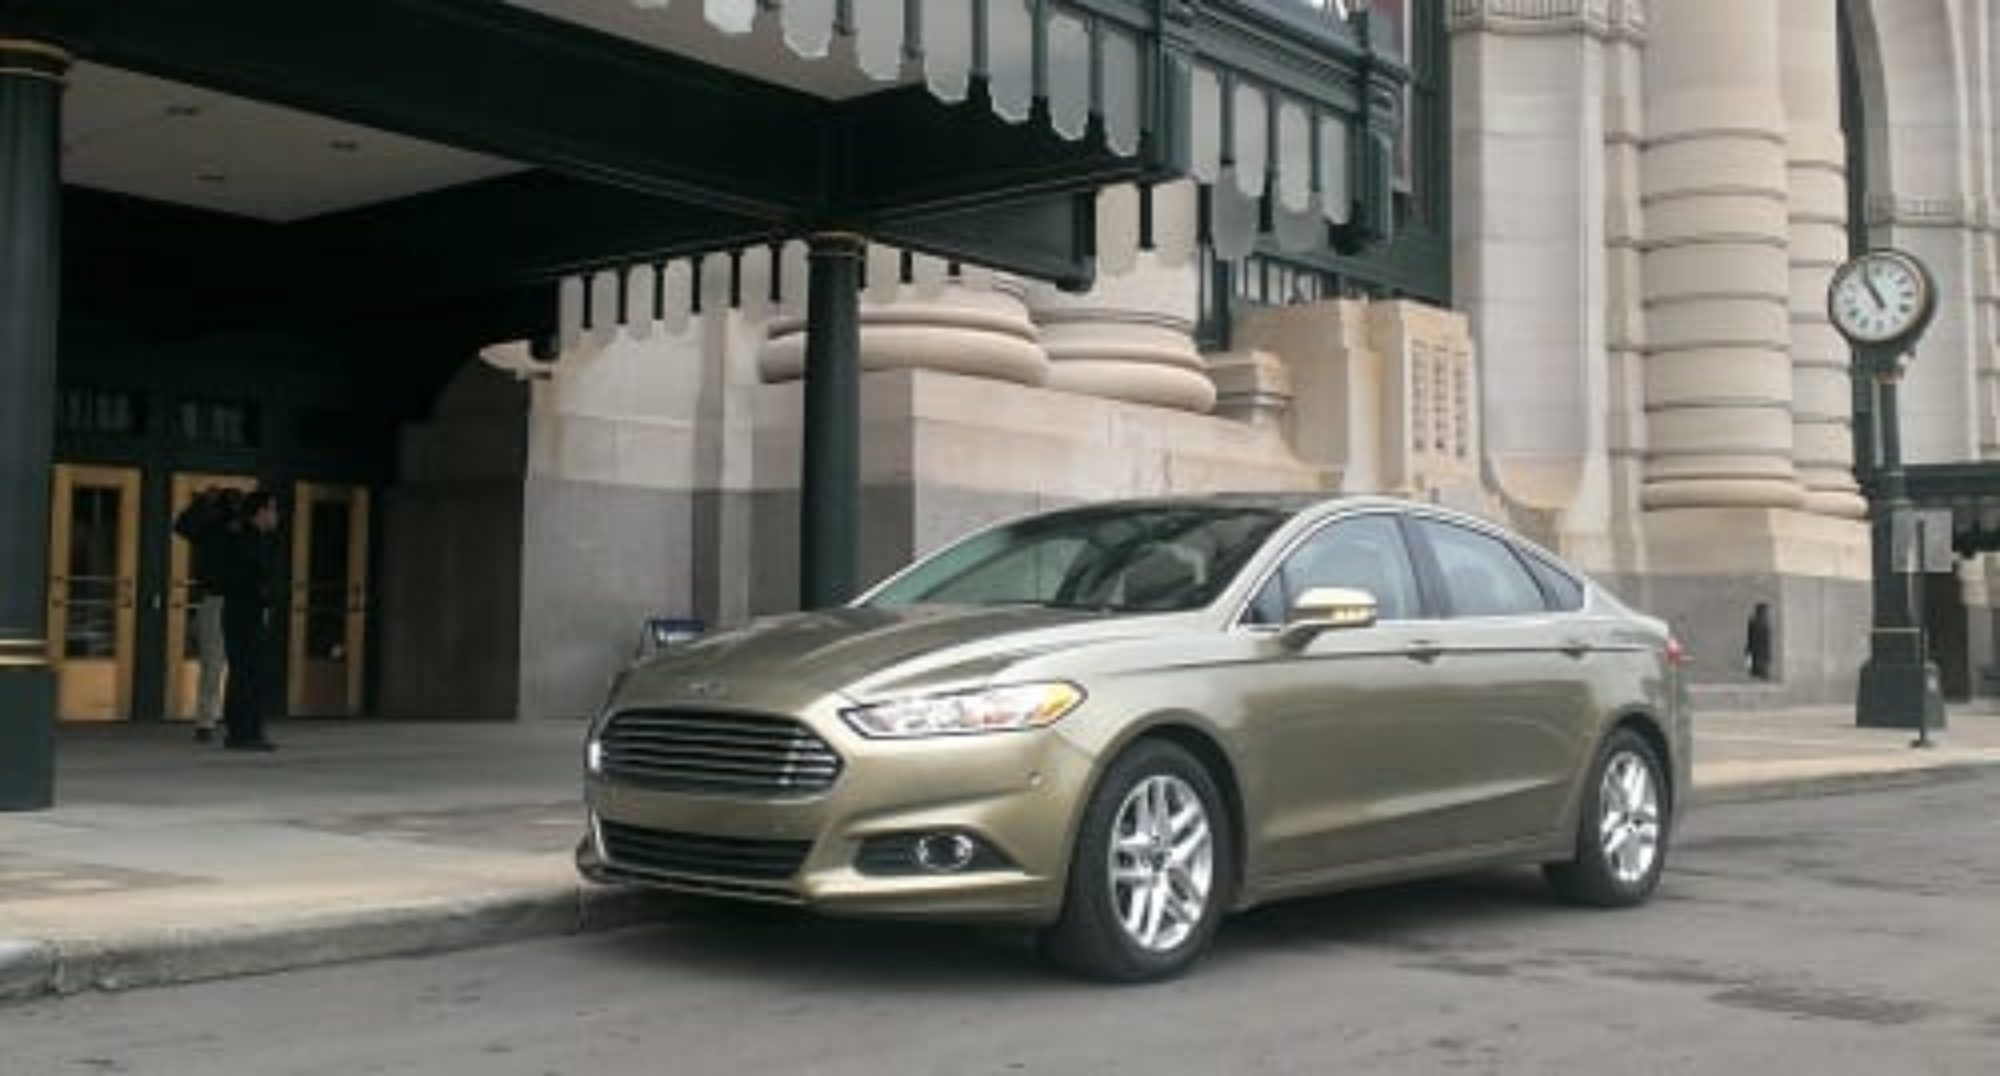 2013 Ford Fusion SE EcoBoost Review | enrg io